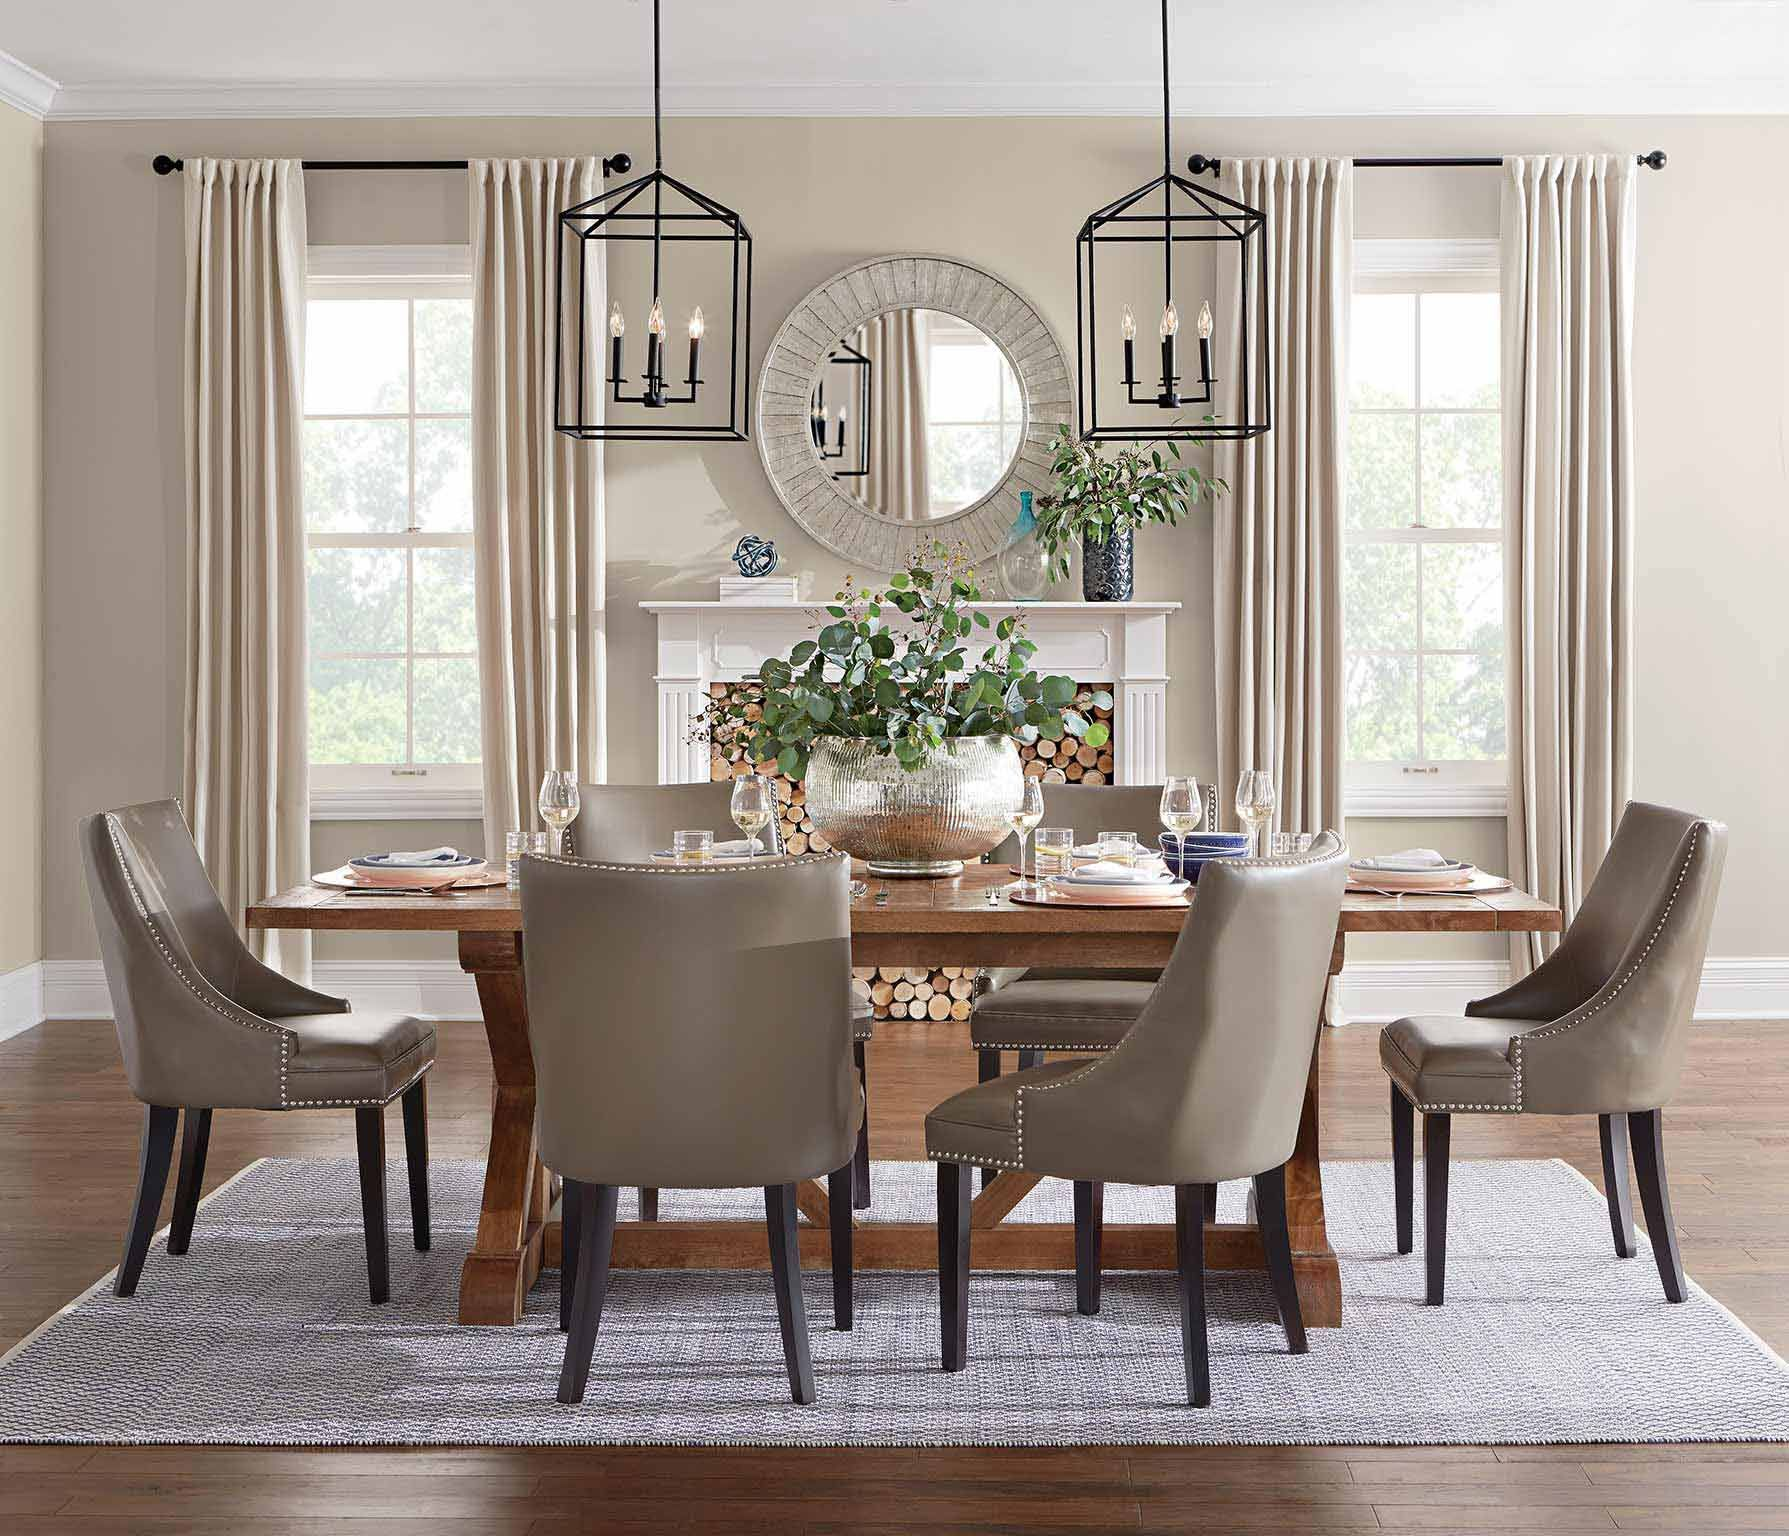 Living Room And Dining Room Together: The Natural Classic Dining Room Is Characterized By